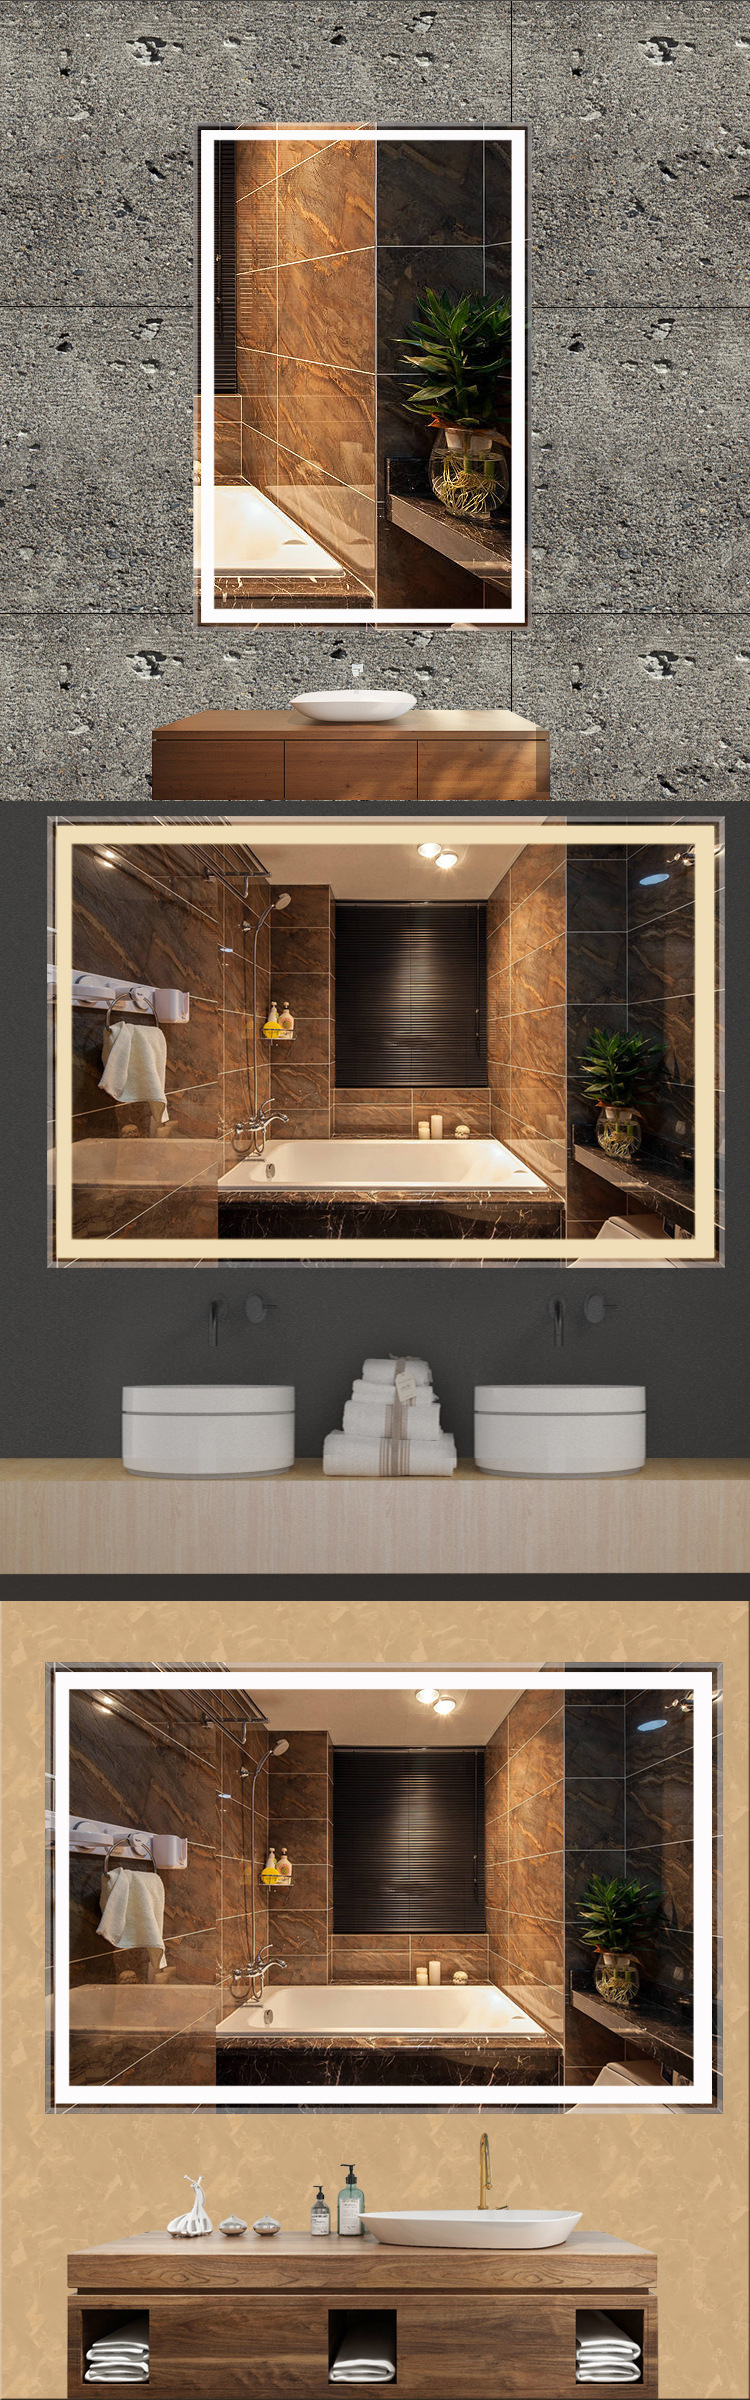 Bathroom Mirror Light UpofApplication Makeup Mirror With Led Lights